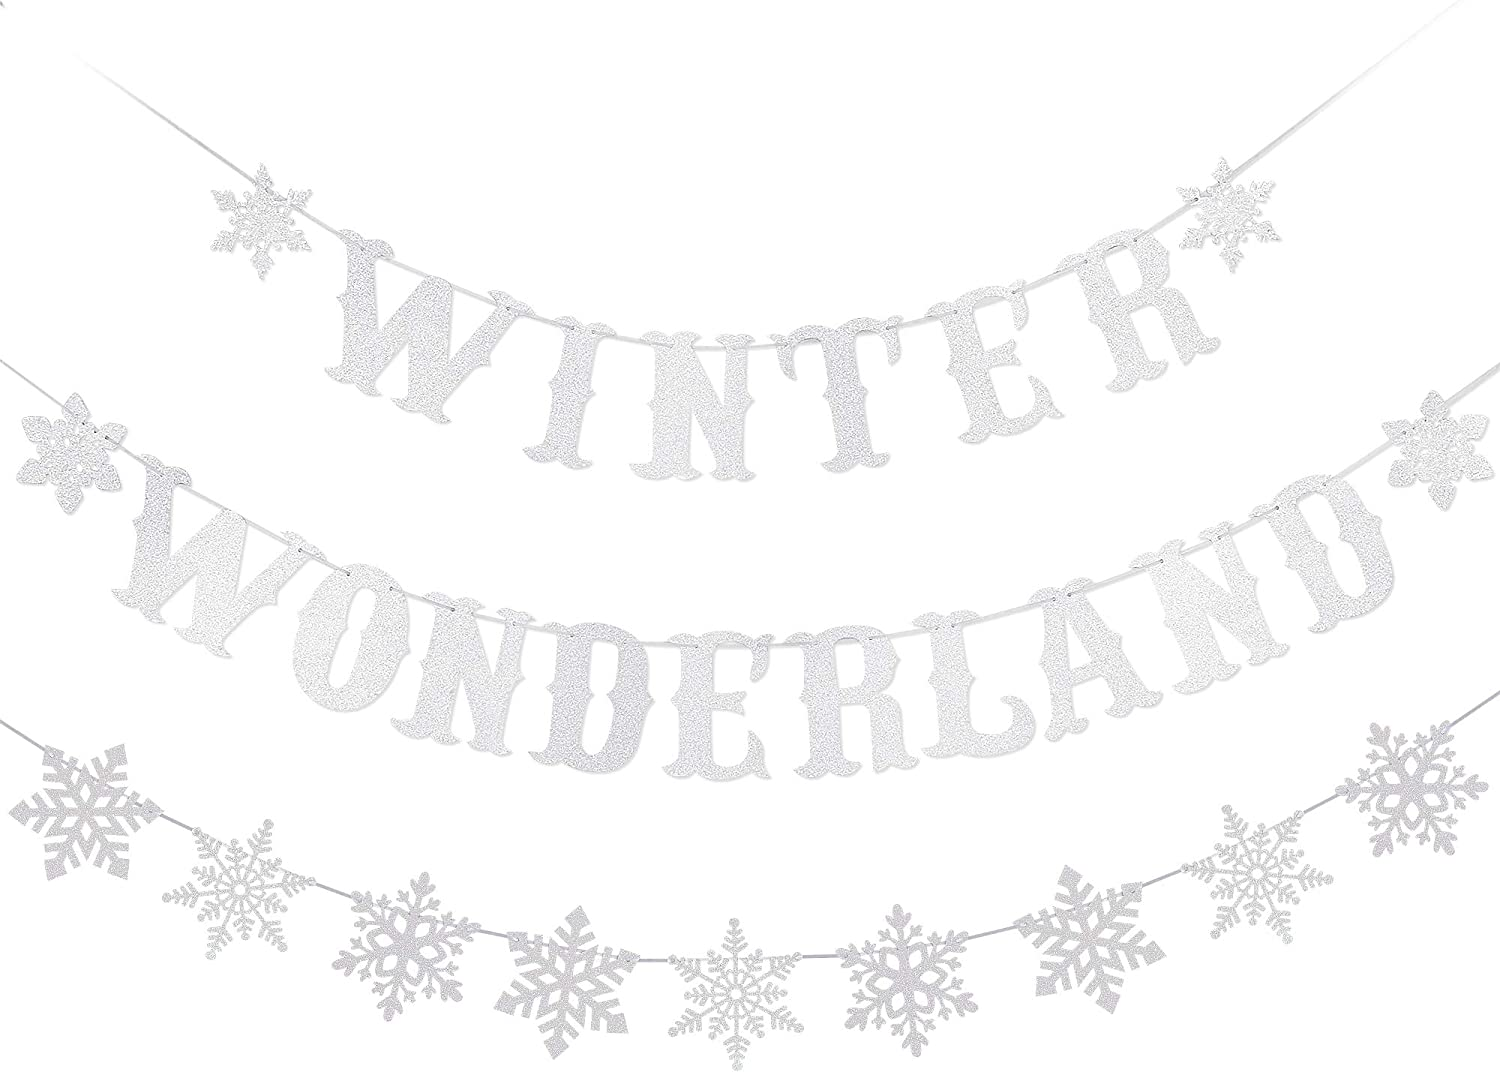 Winter Wonderland Banner Silver Glitter and Silver Glittery Snowflake Banner - Winter Baby Shower Decorations,Winter Wonderland Decor,Winter Decorations,Christmas Party Decorations,Snowflake Garland Decor